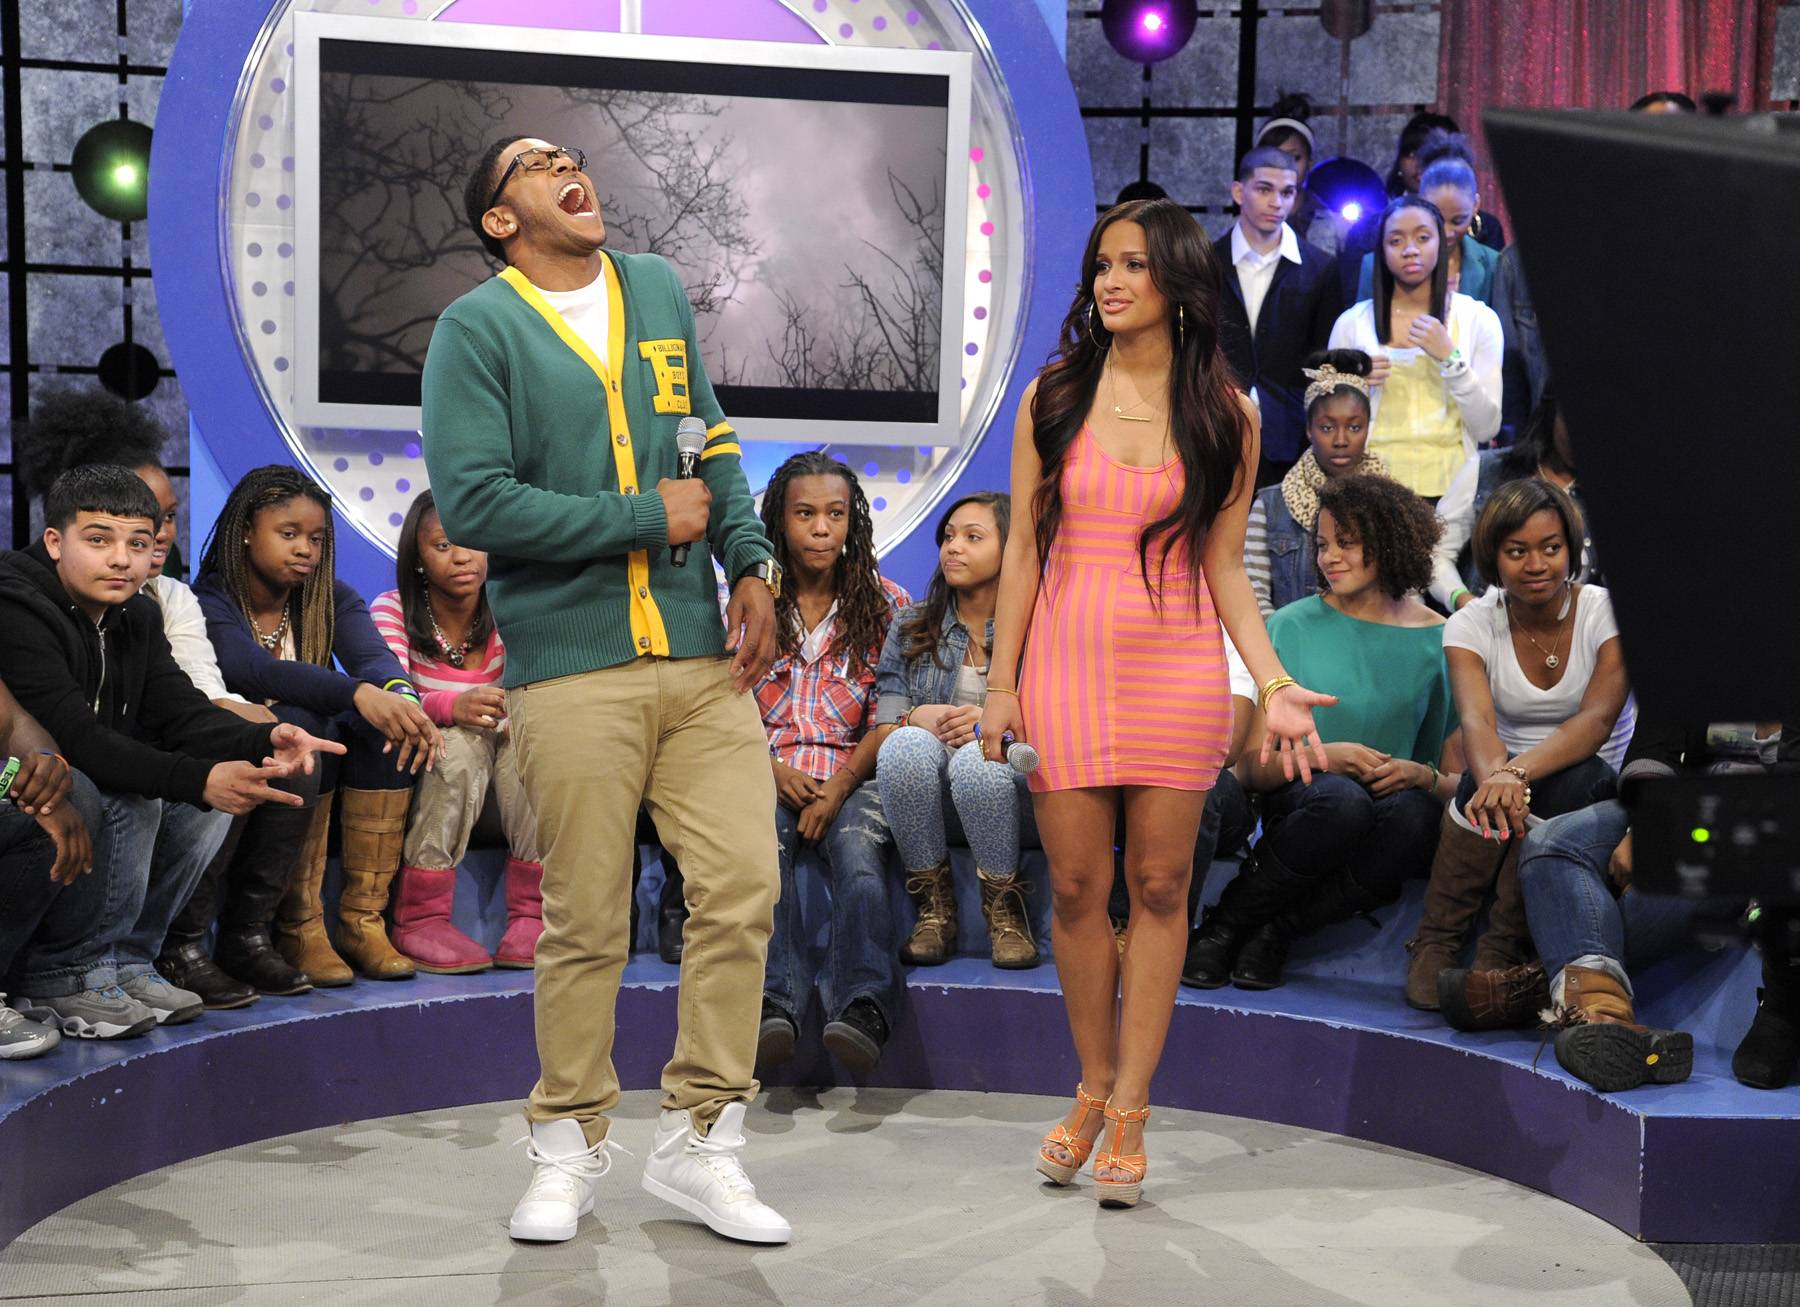 LOL - Pooch Hall clowns around during commercial break at 106 & Park, April 12, 2012. (Photo: John Ricard / BET)